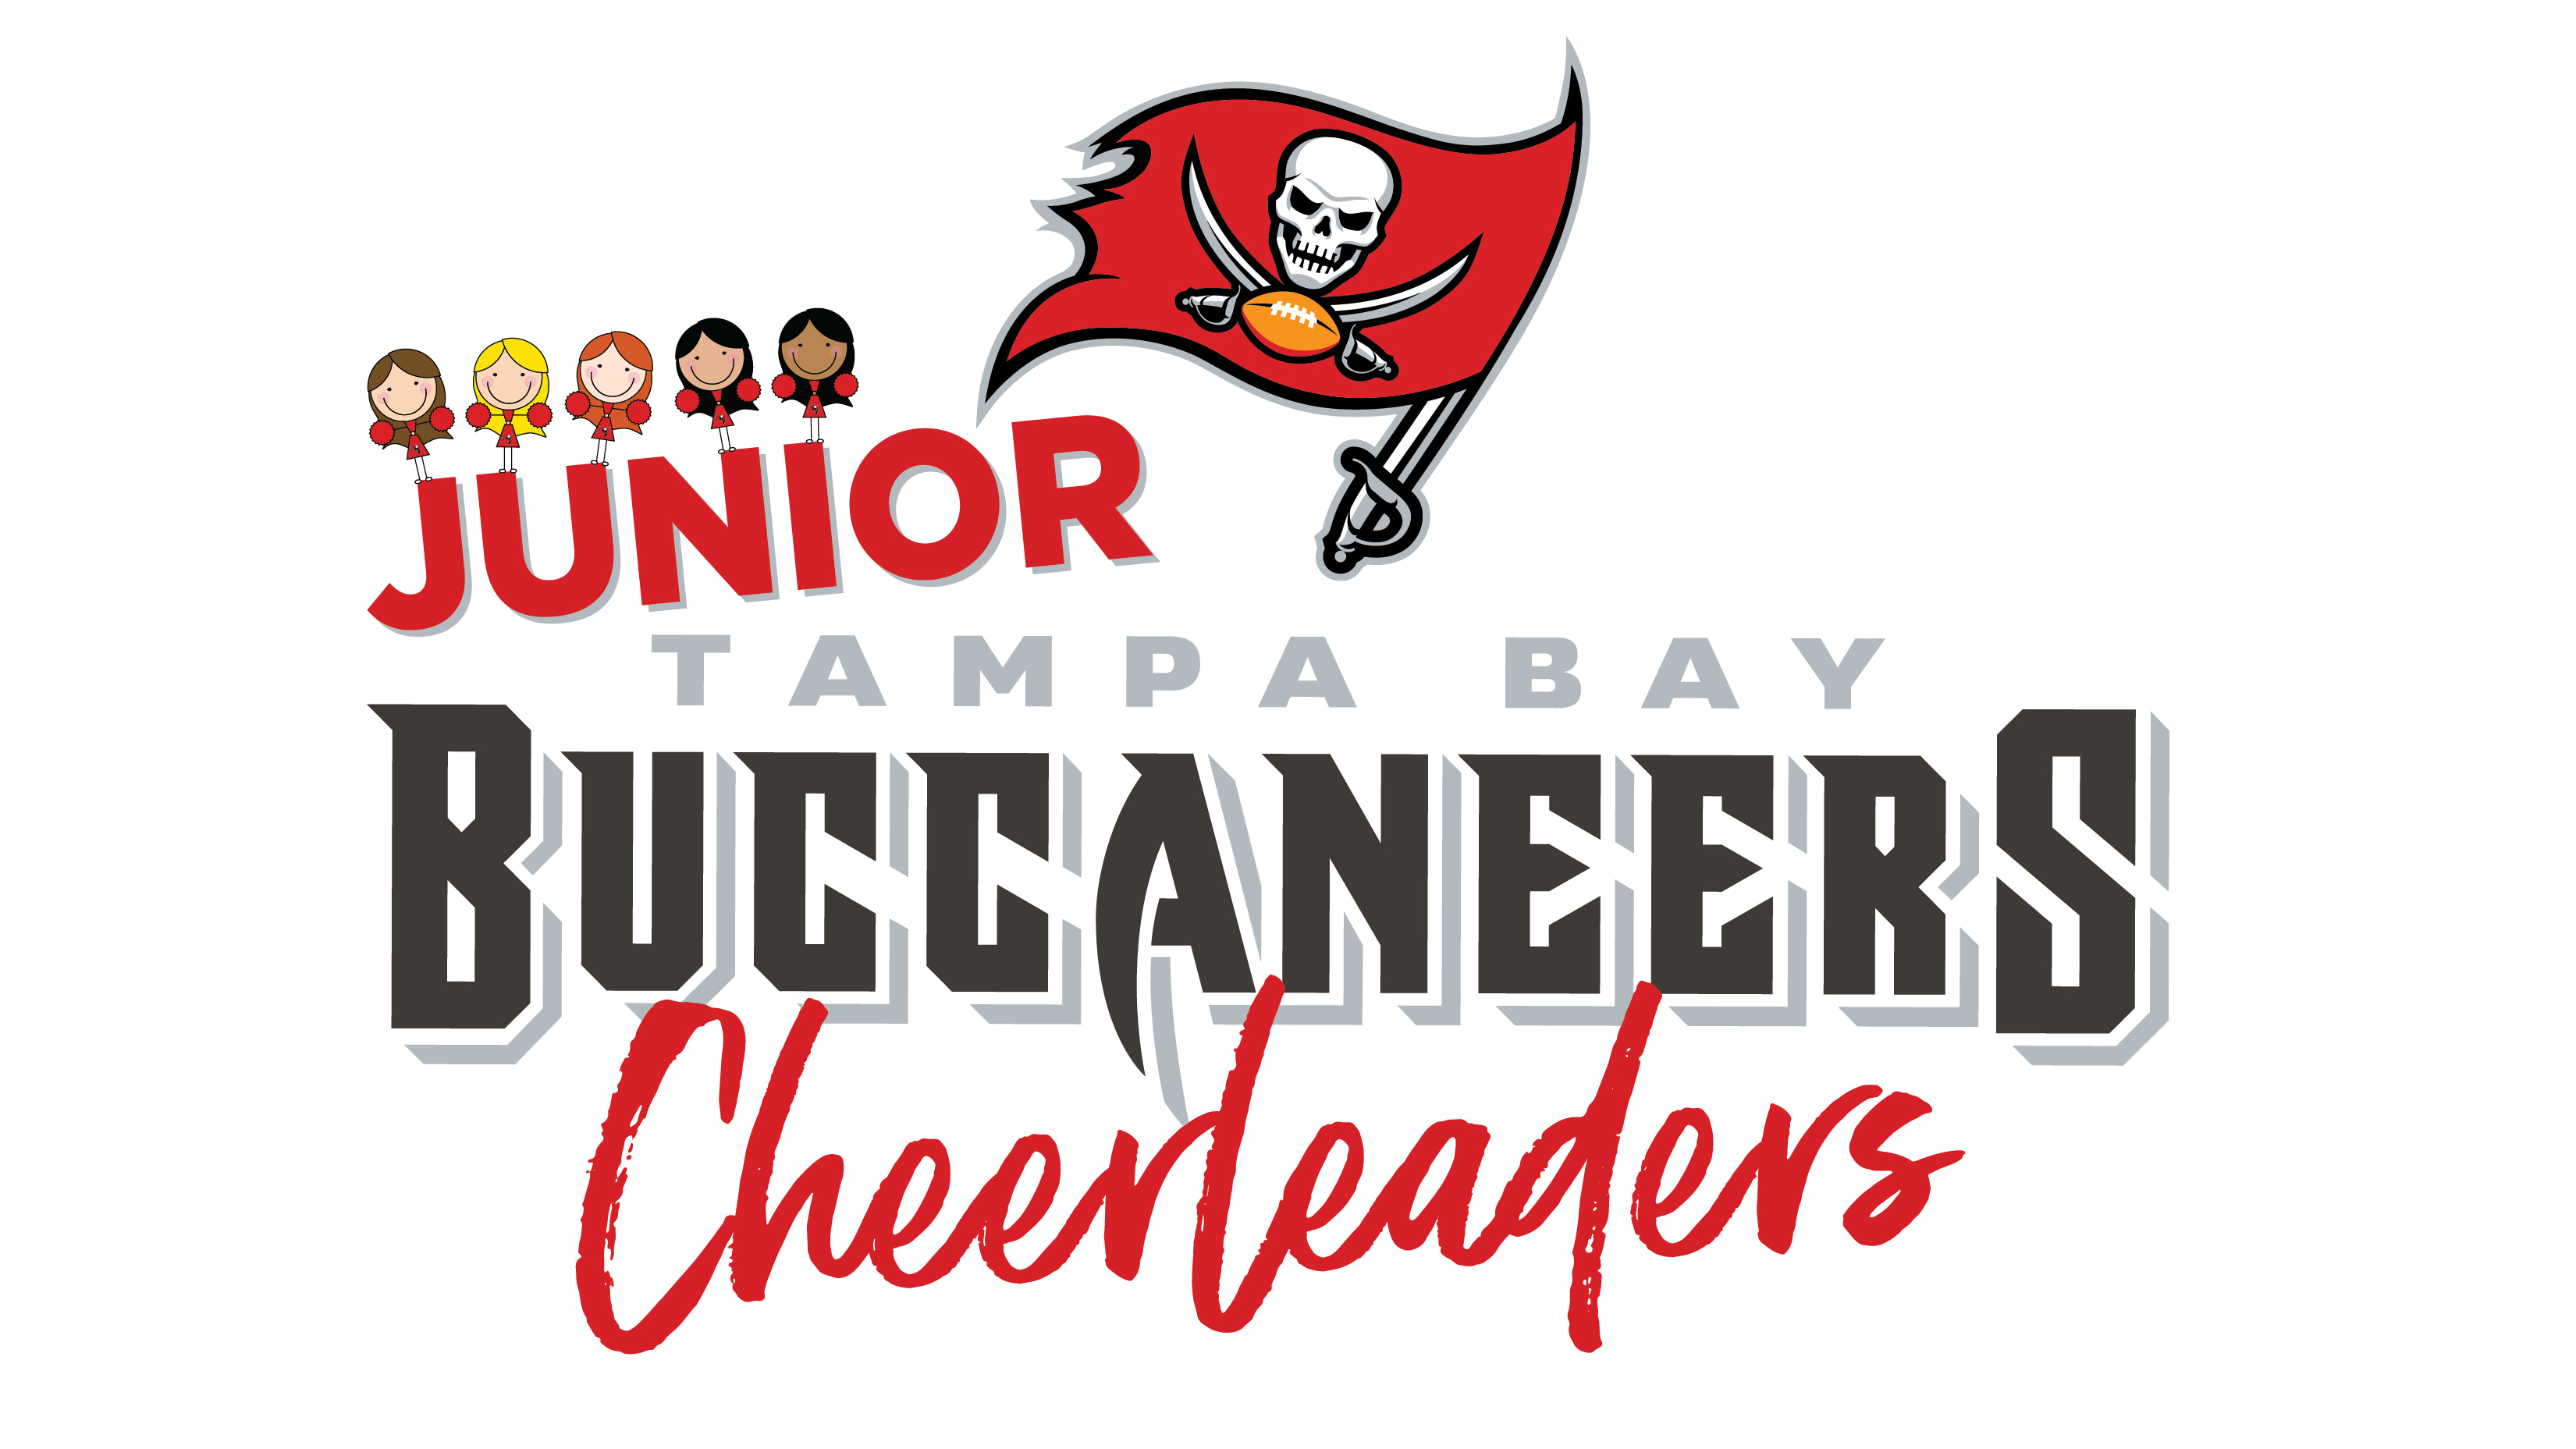 Junior Bucs Cheerleaders